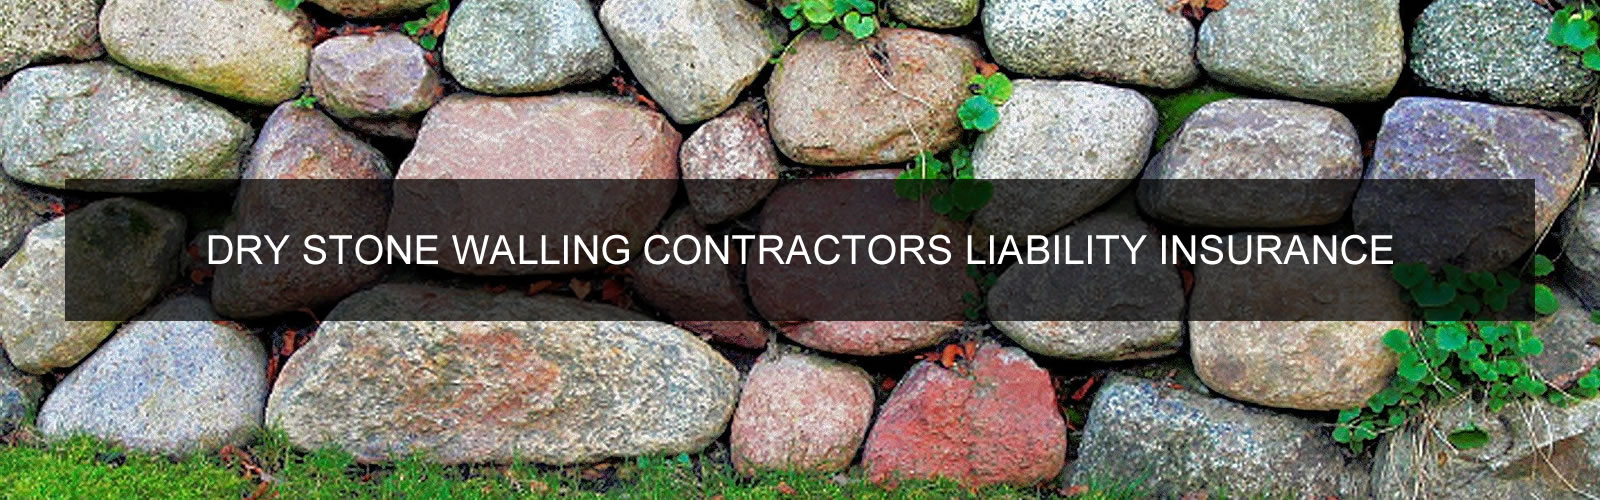 DRY STONE WALLING CONTRACTORS LIABILITY INSURANCE